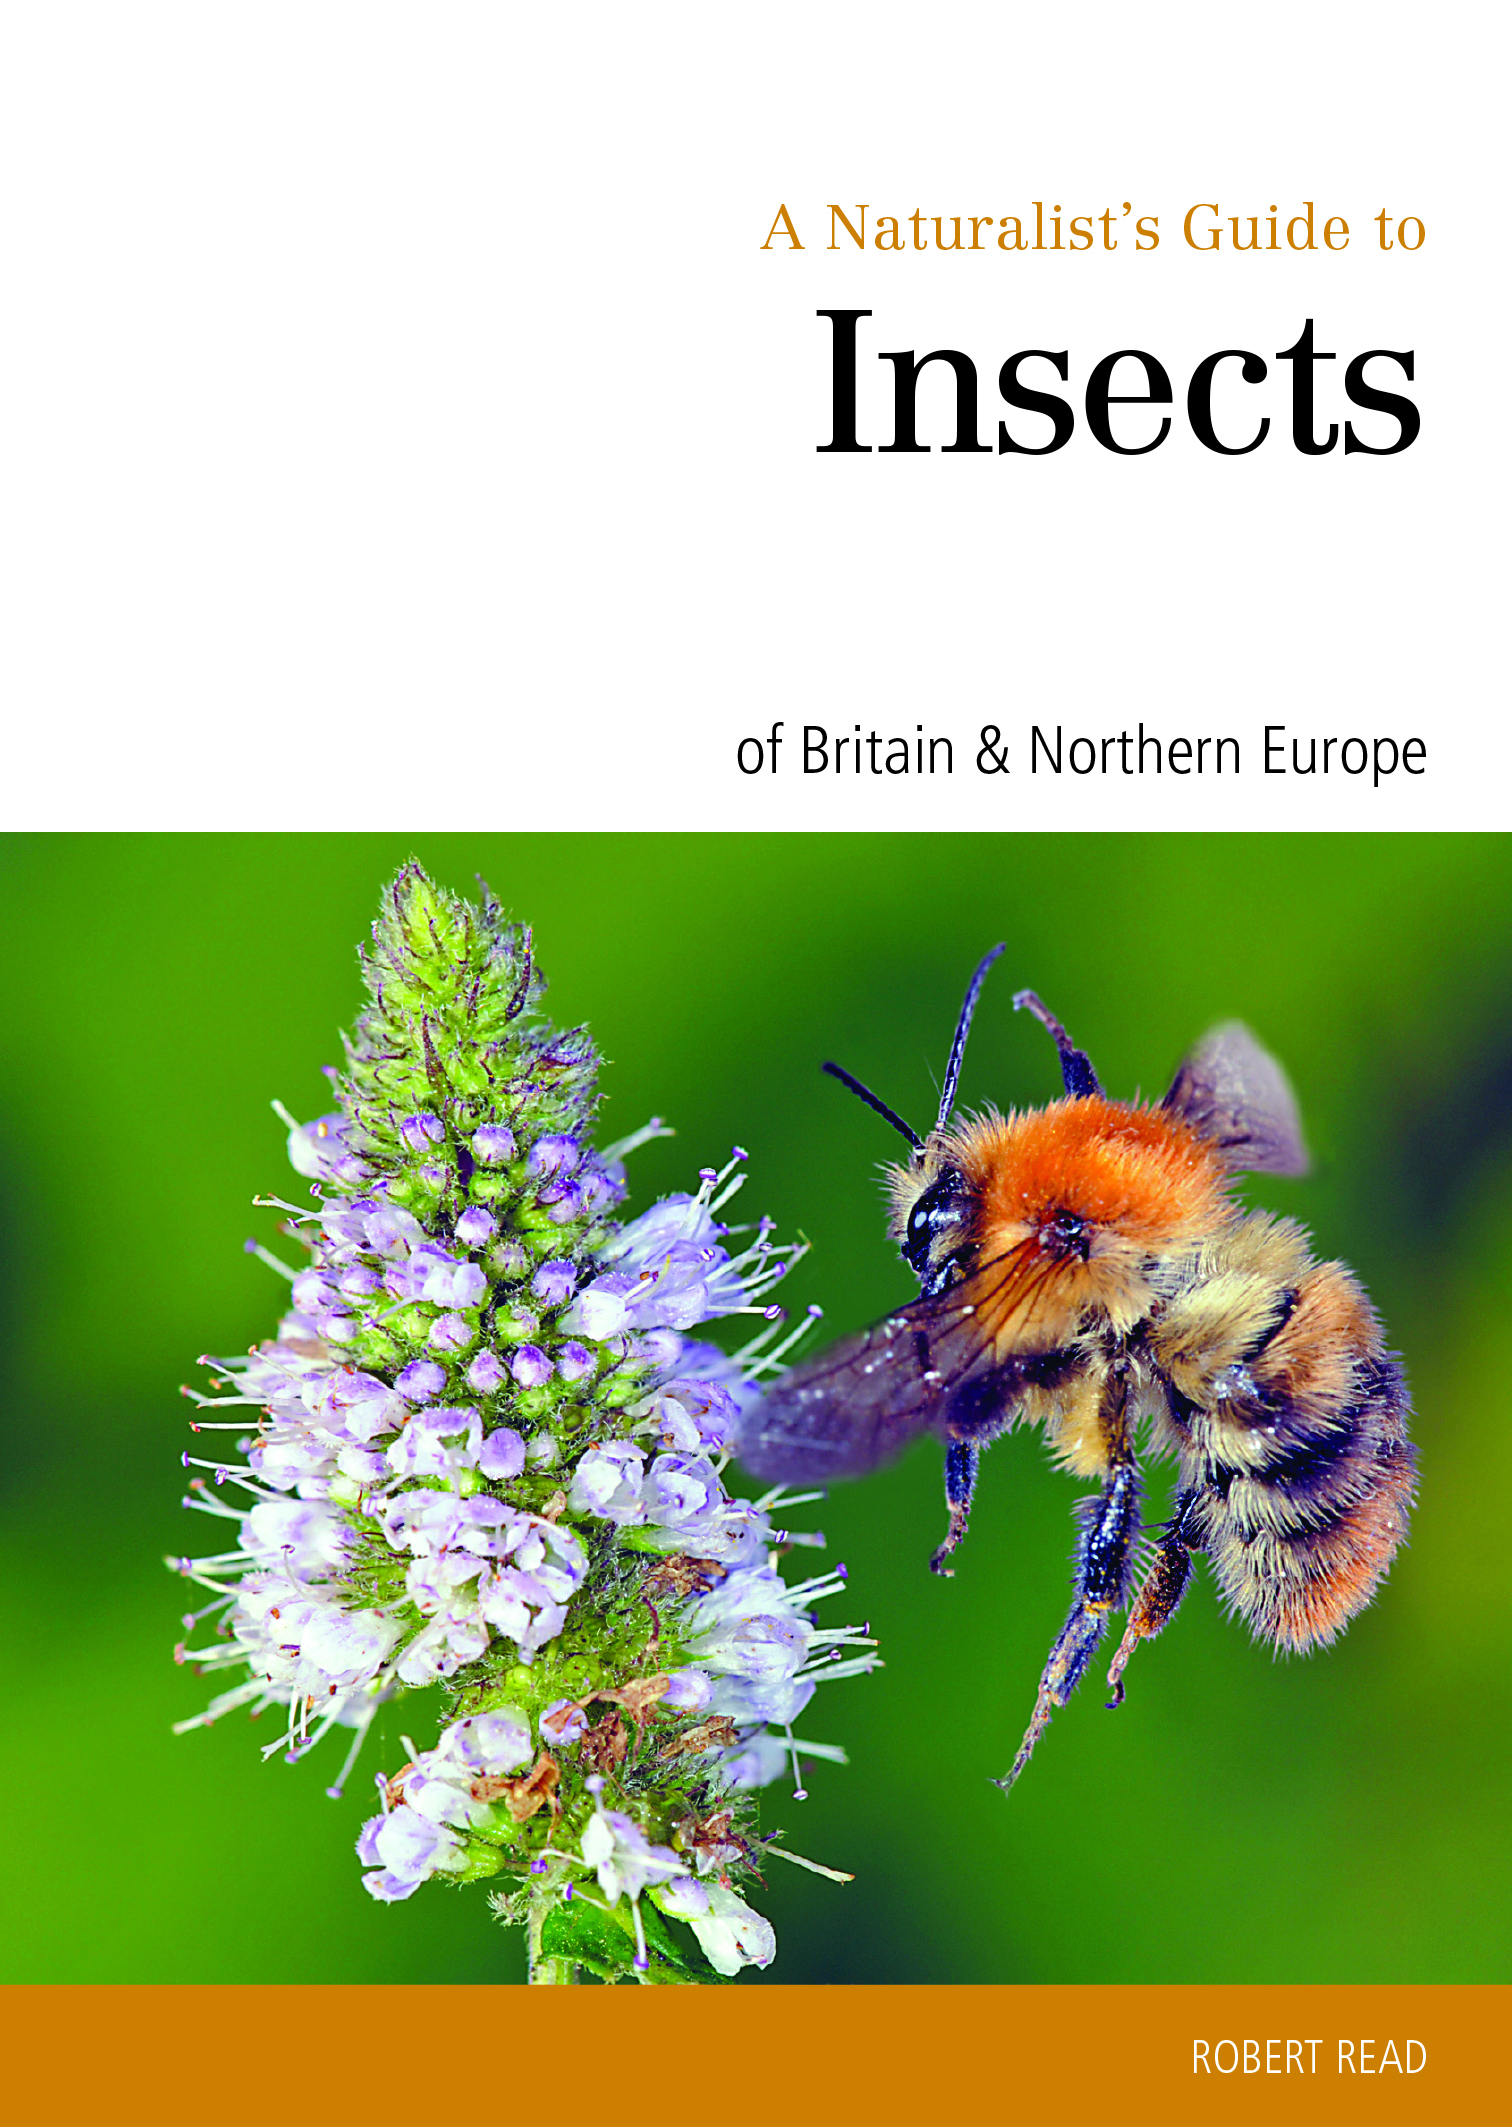 A Naturalist's Guide to the Insects of Britain & Northern Europe